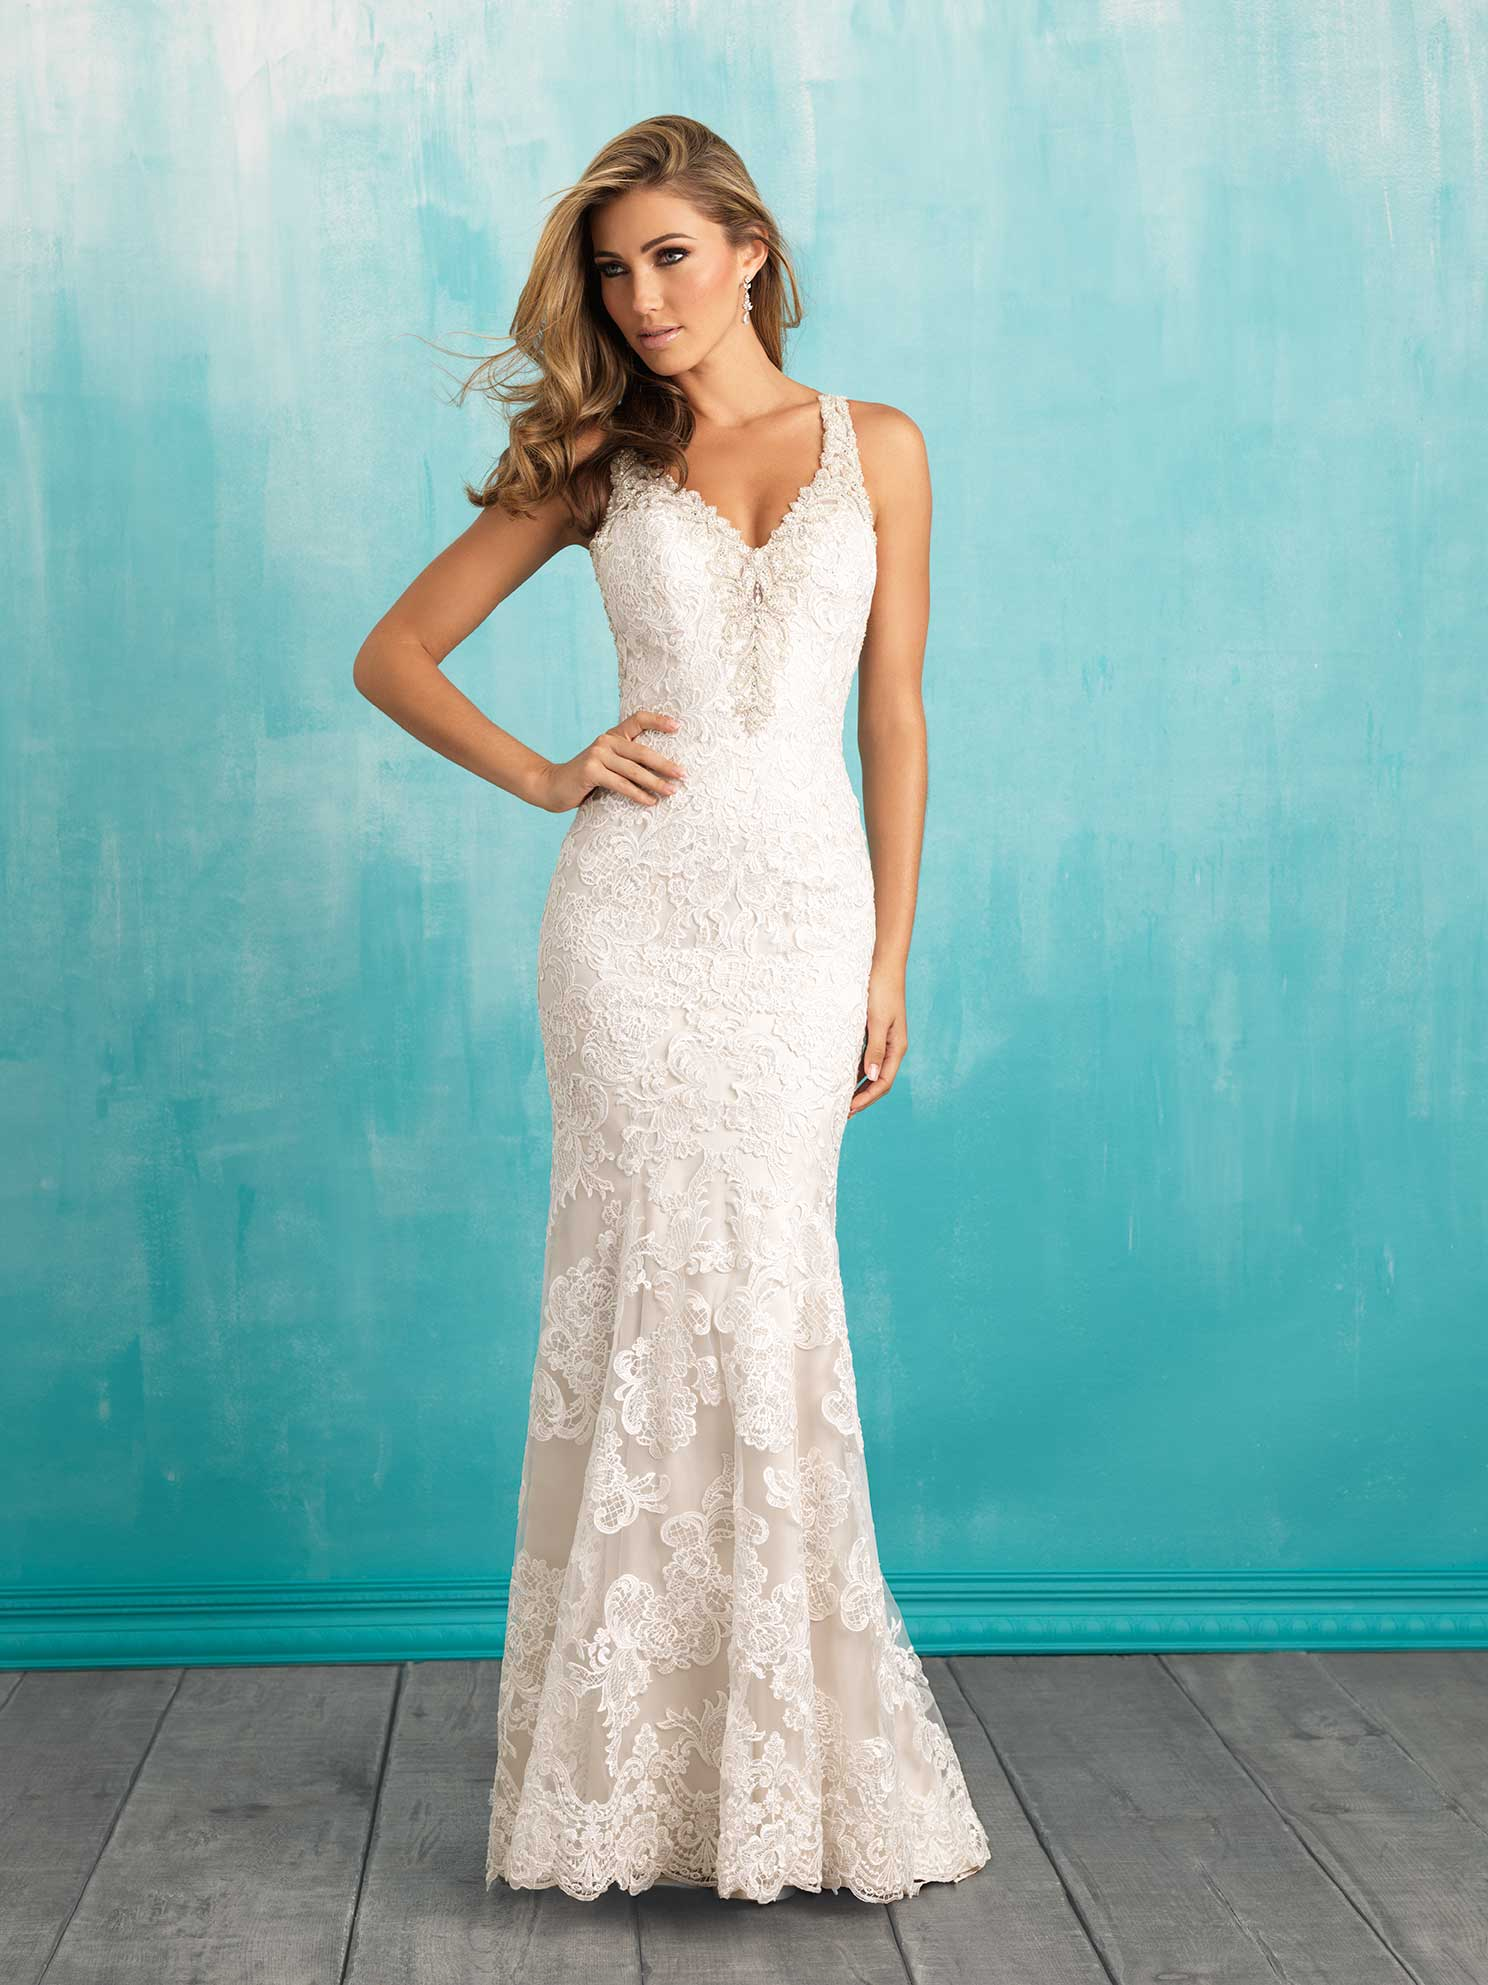 20 Best Choices of Sheath Wedding Dress - EverAfterGuide